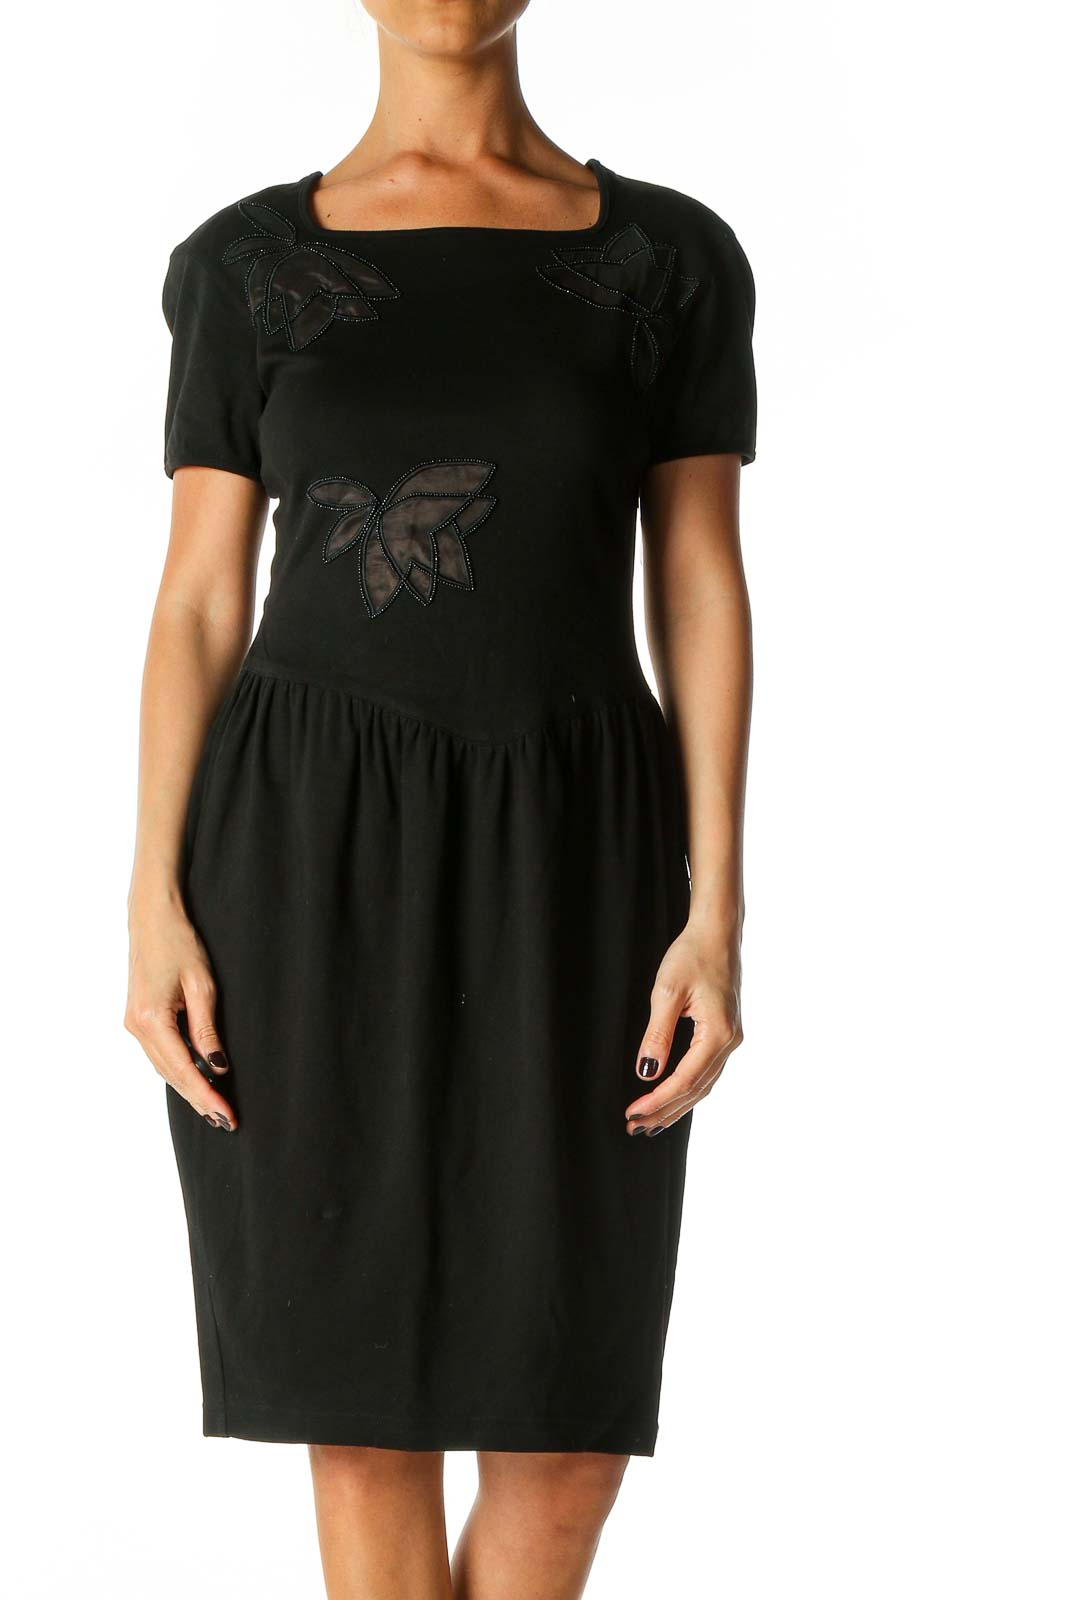 Black Solid Cocktail Sheath Dress Front